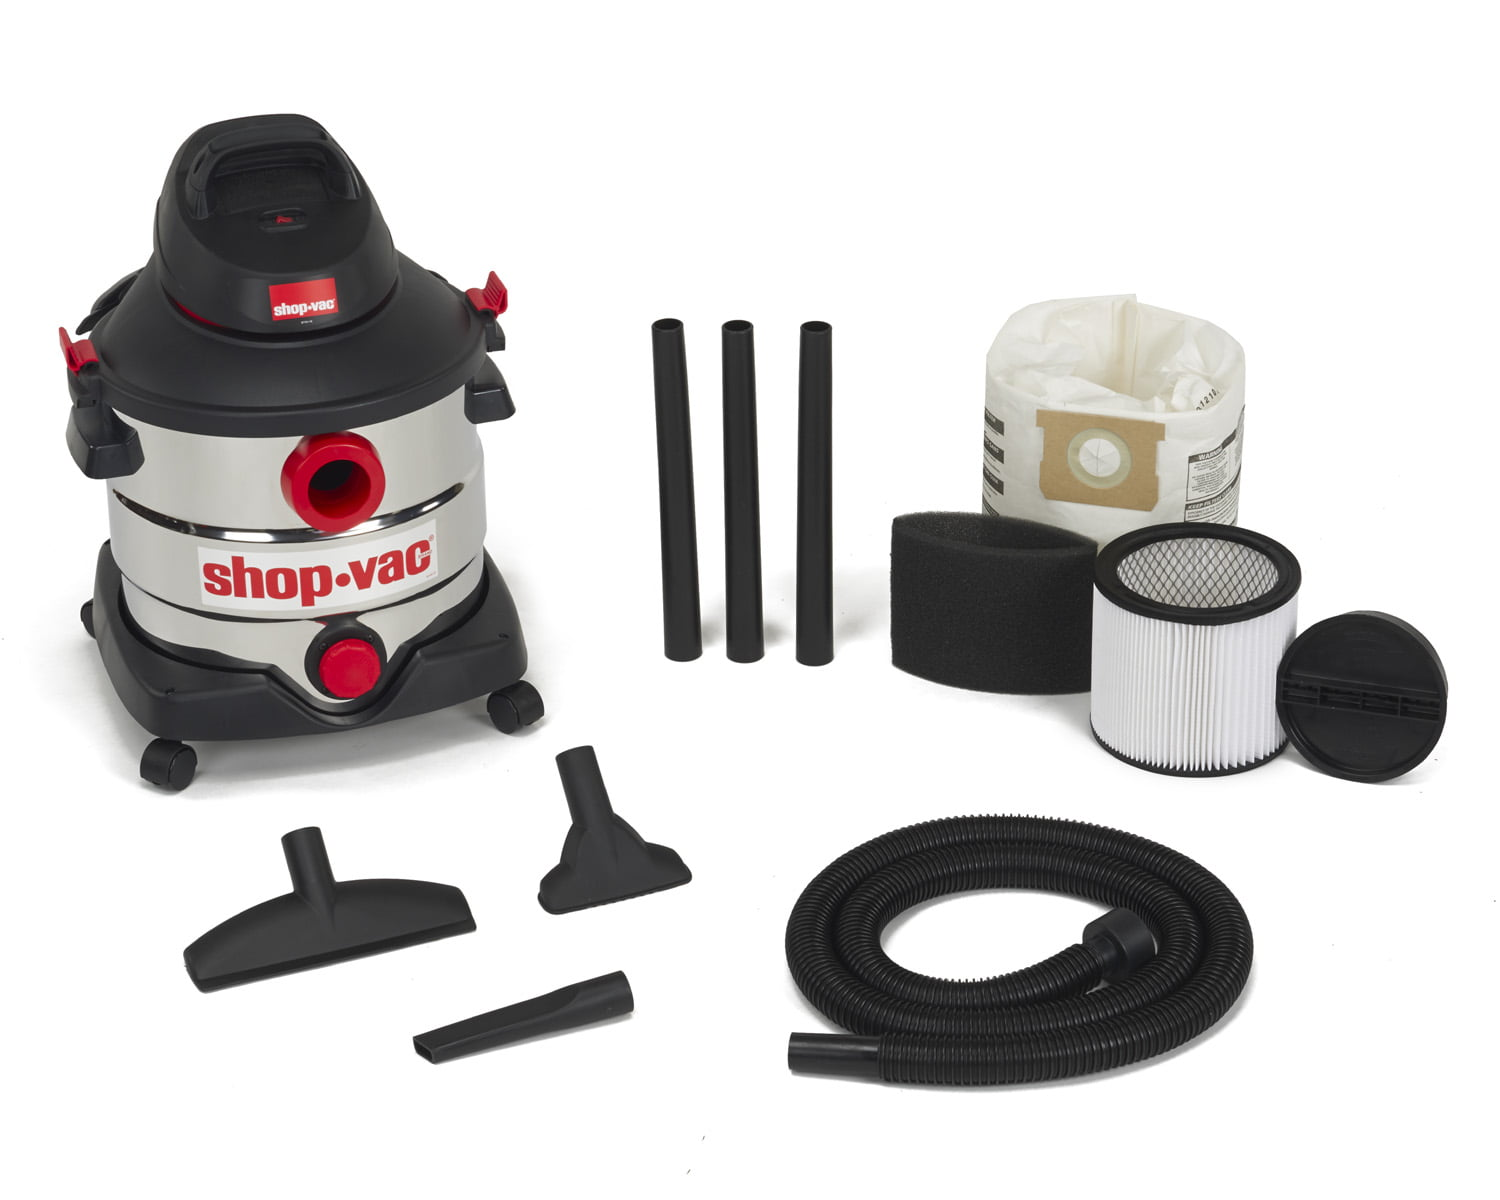 Shop-Vac 8 Gallon 6.0 Peak HP Stainless Steel 5989400 by Shop-Vac Corporation